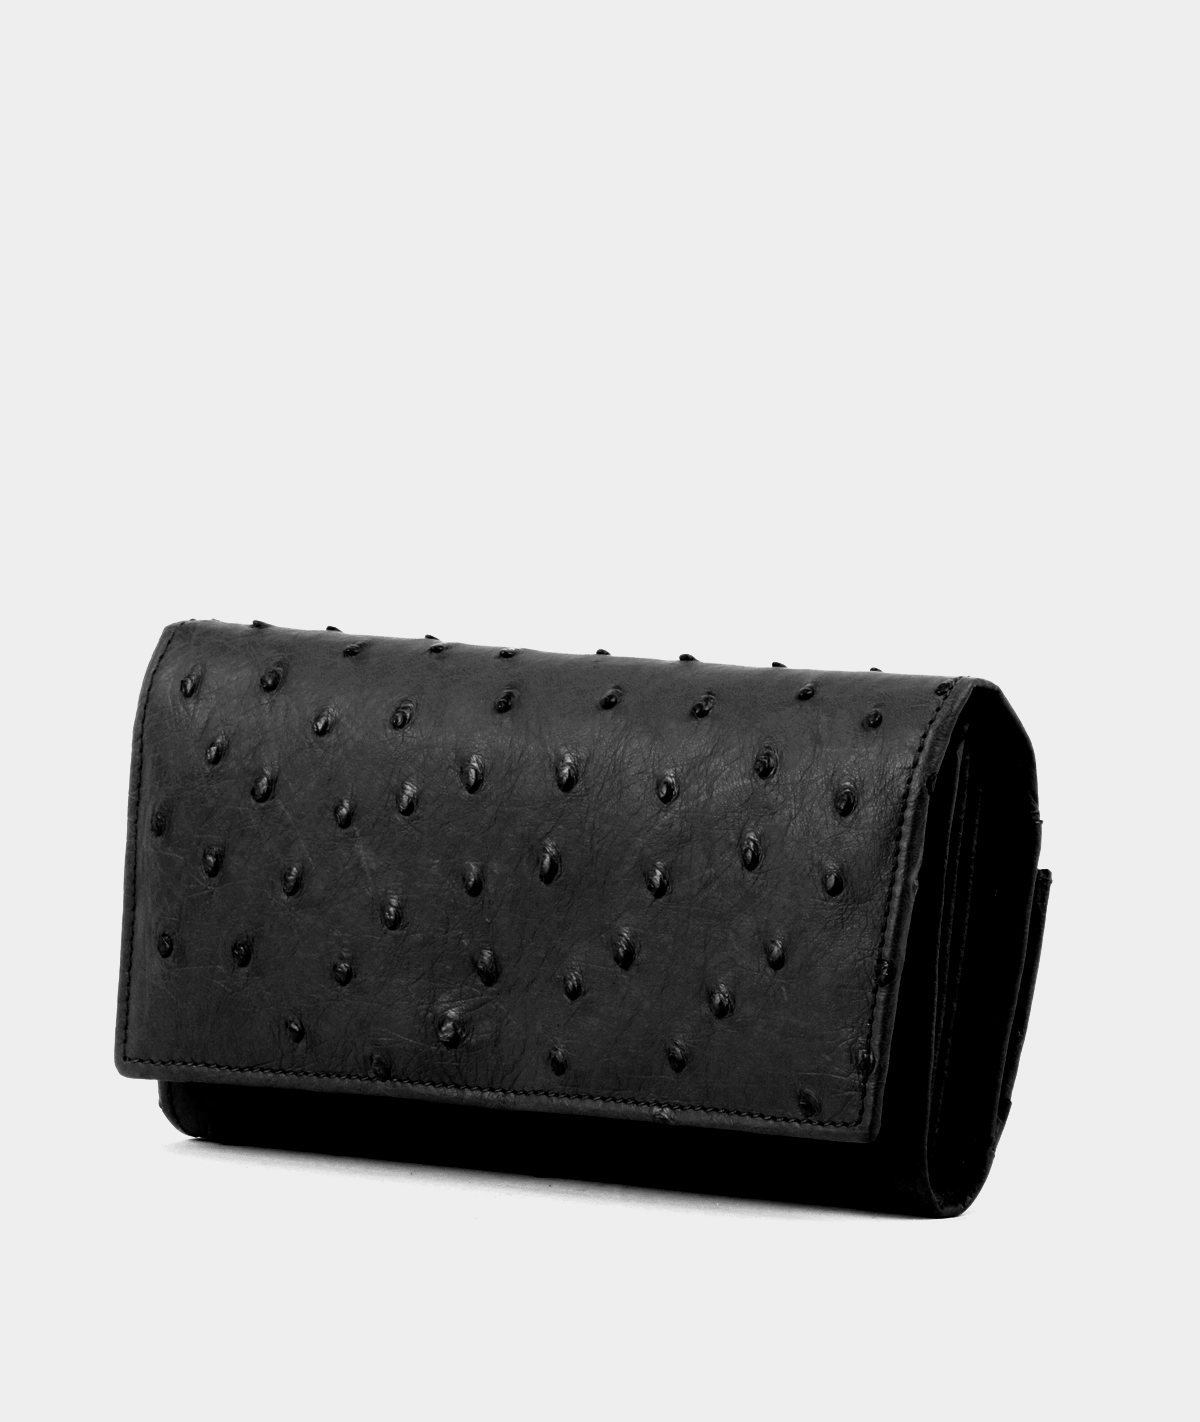 genuine ostrich leather wallet for women in black - side view